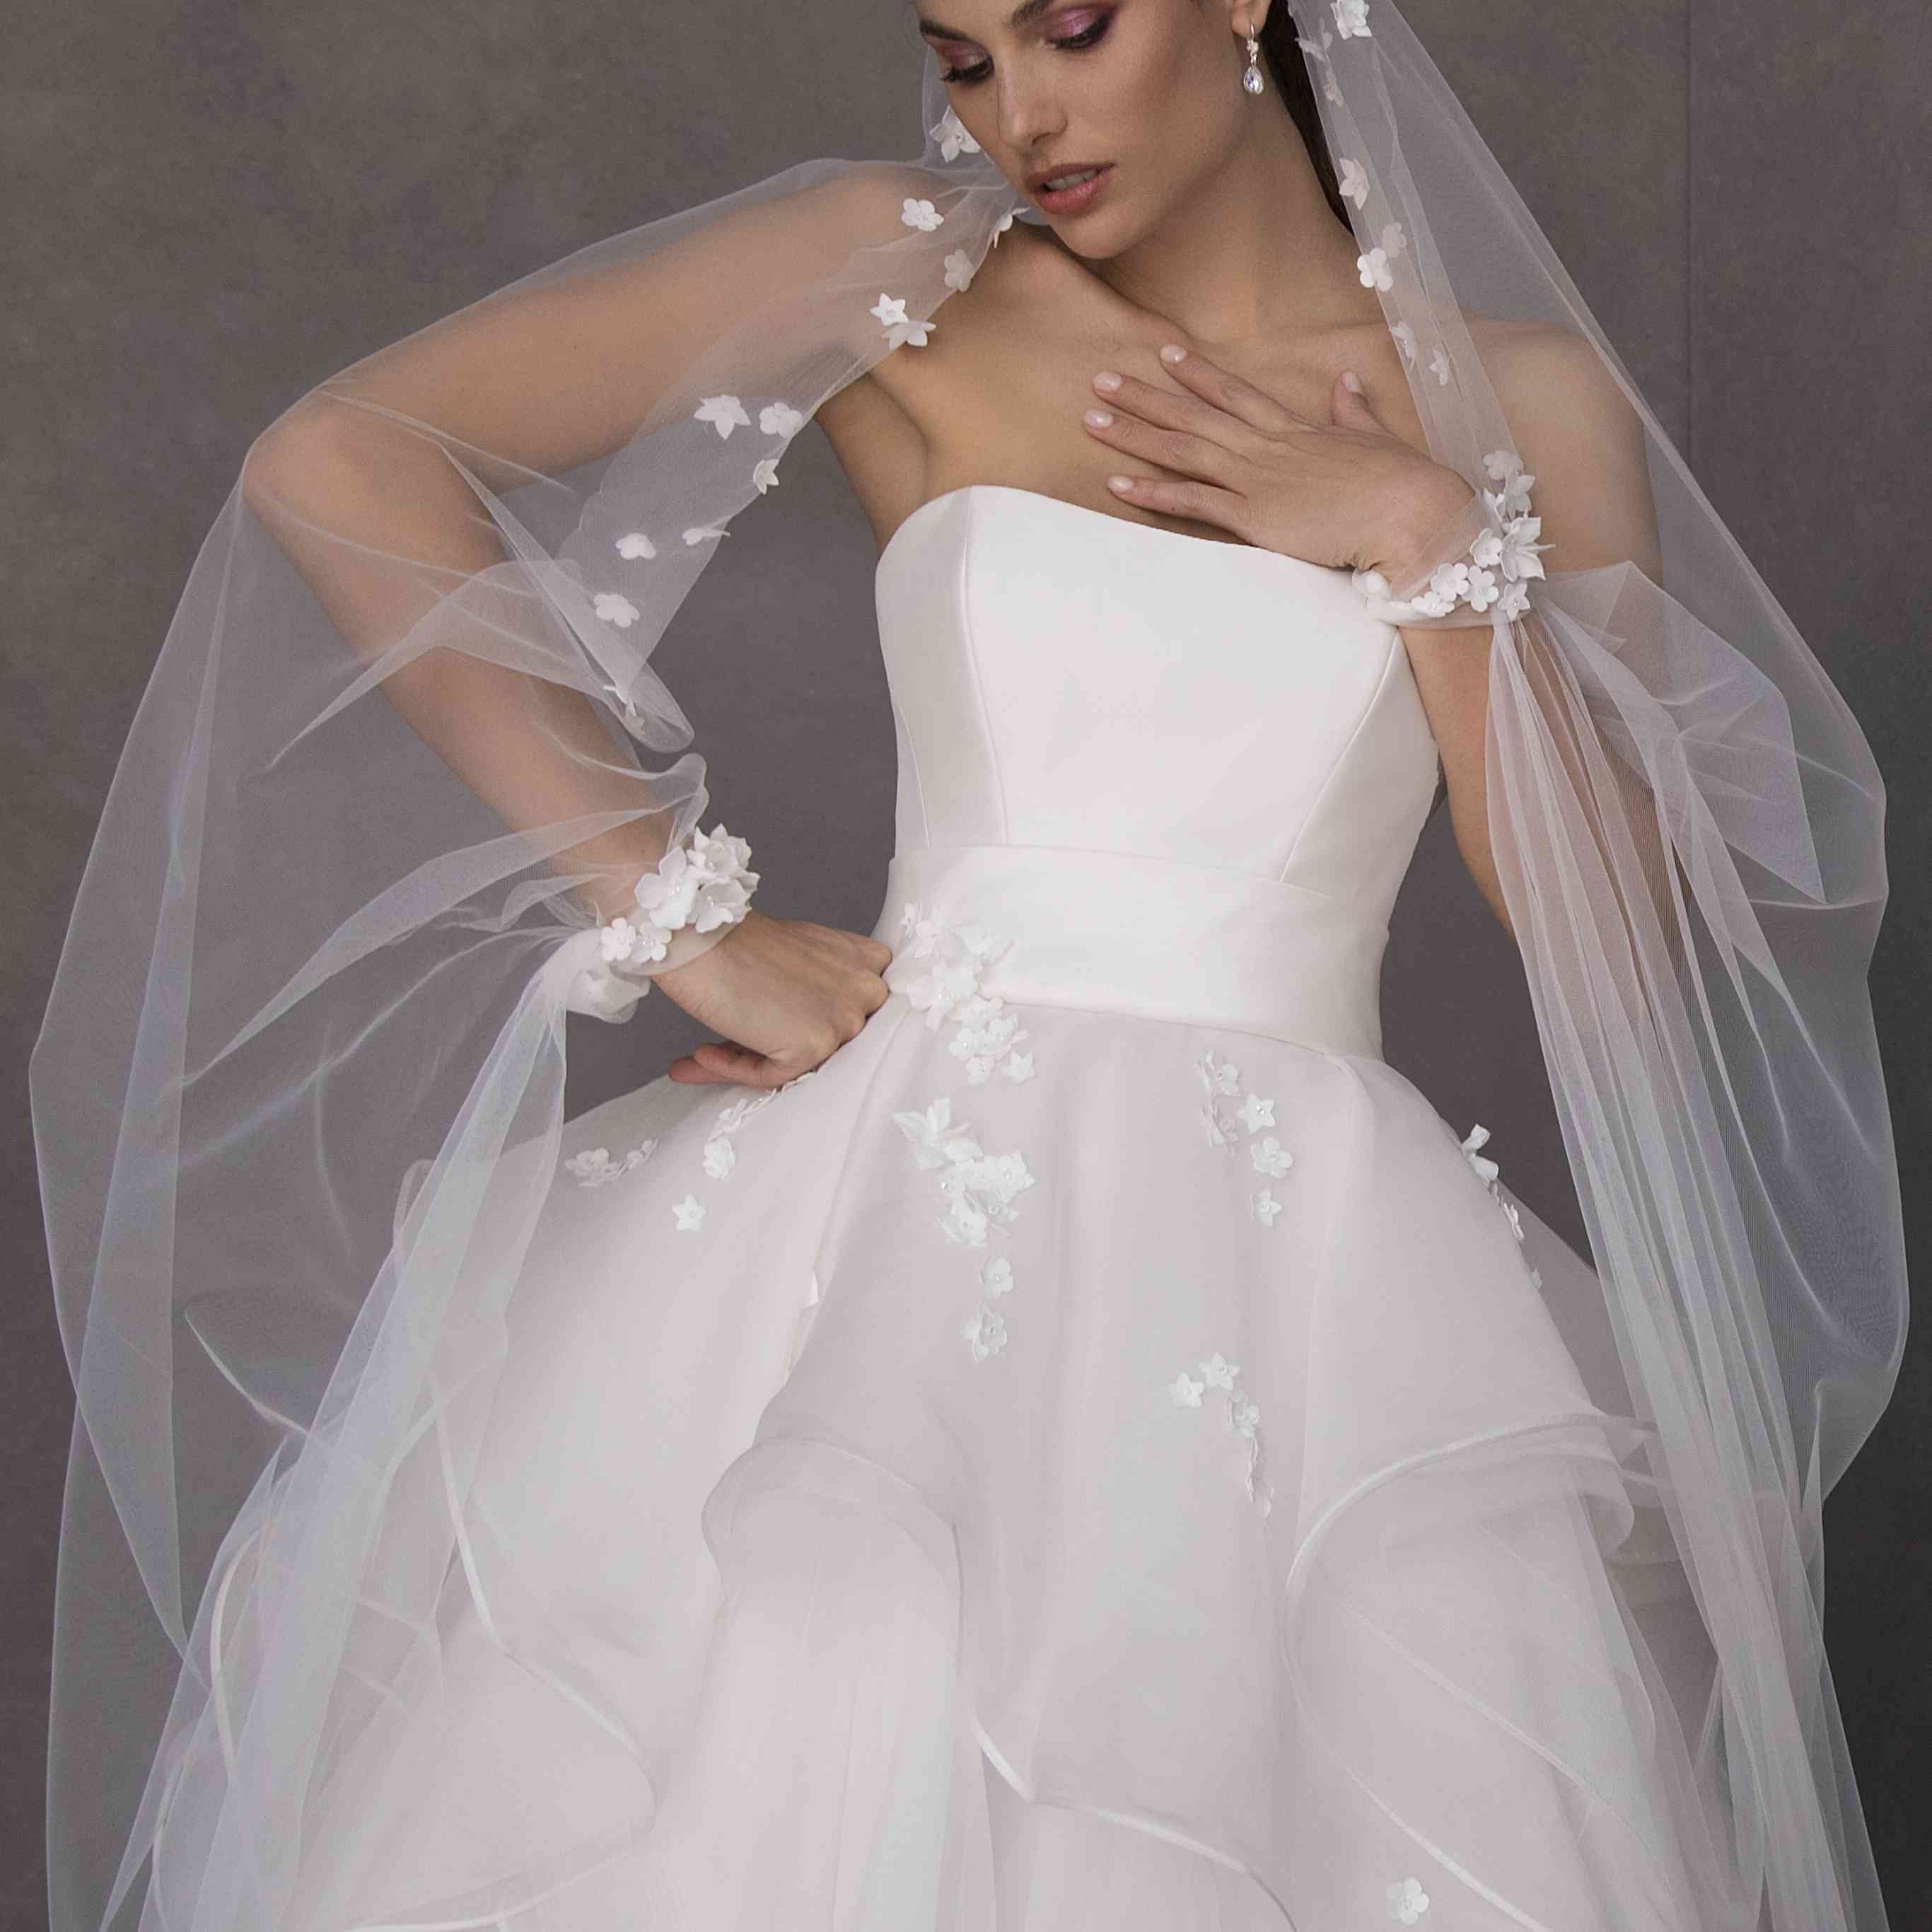 Model in strapless ballgown with a tiered tulle skirt with floral appliques